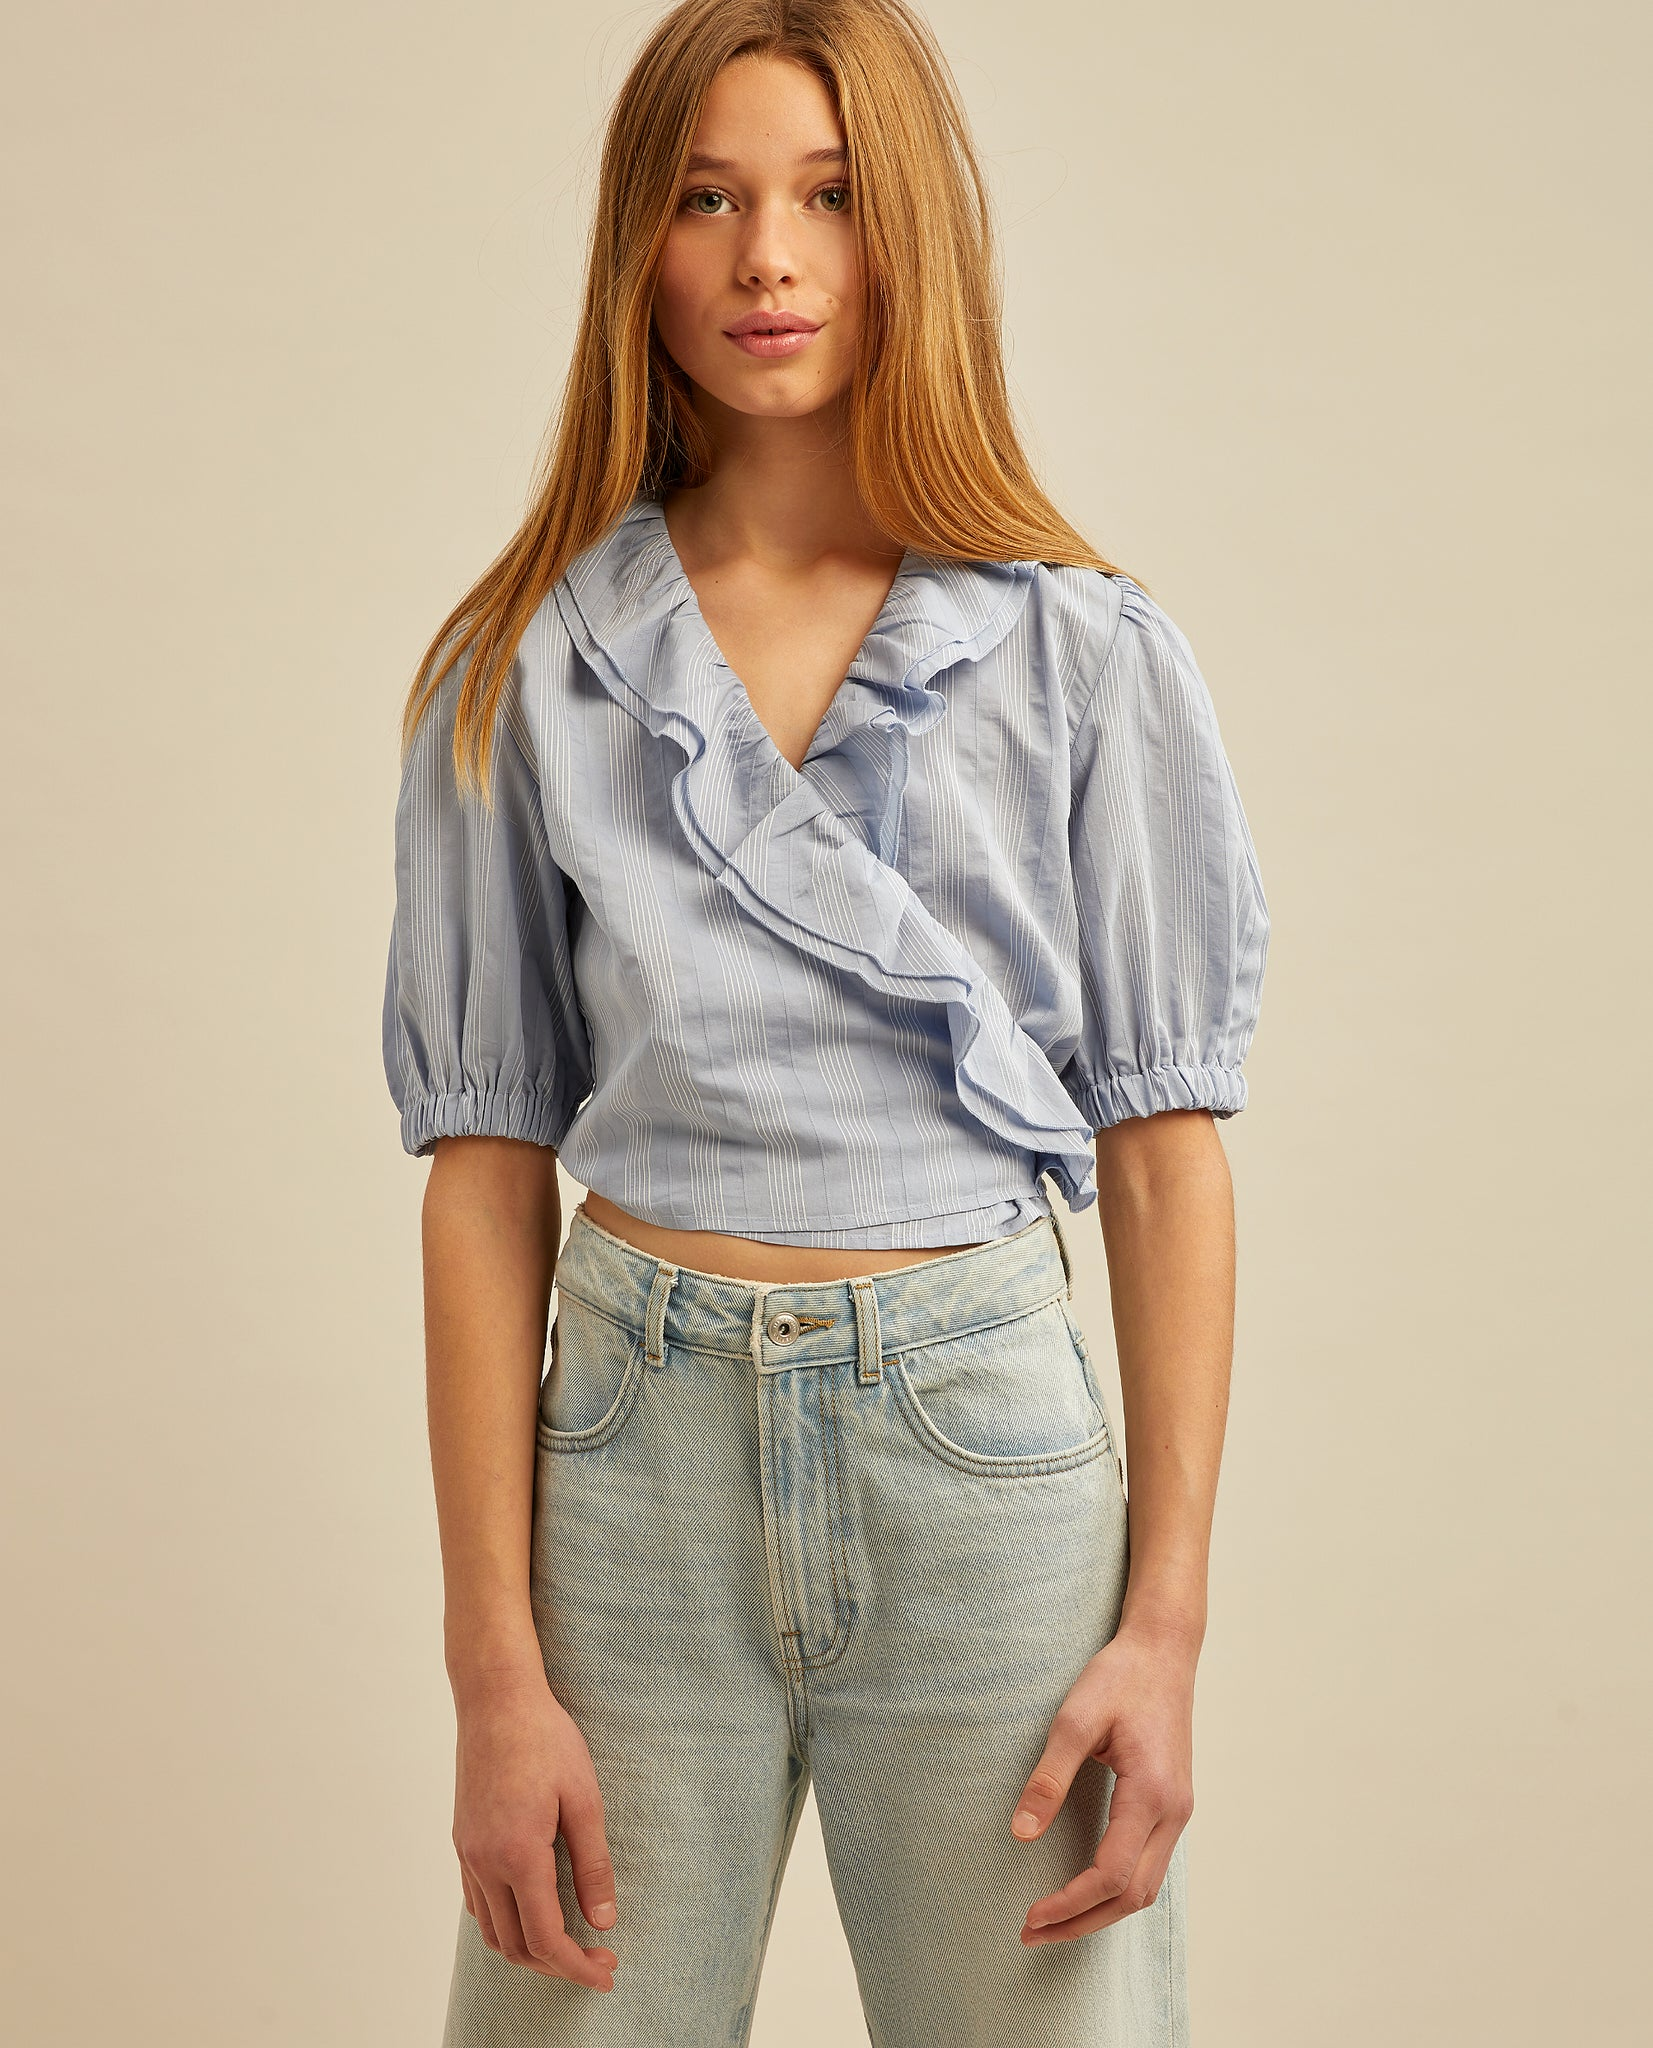 Bruna top - Bright Blue White Stripe